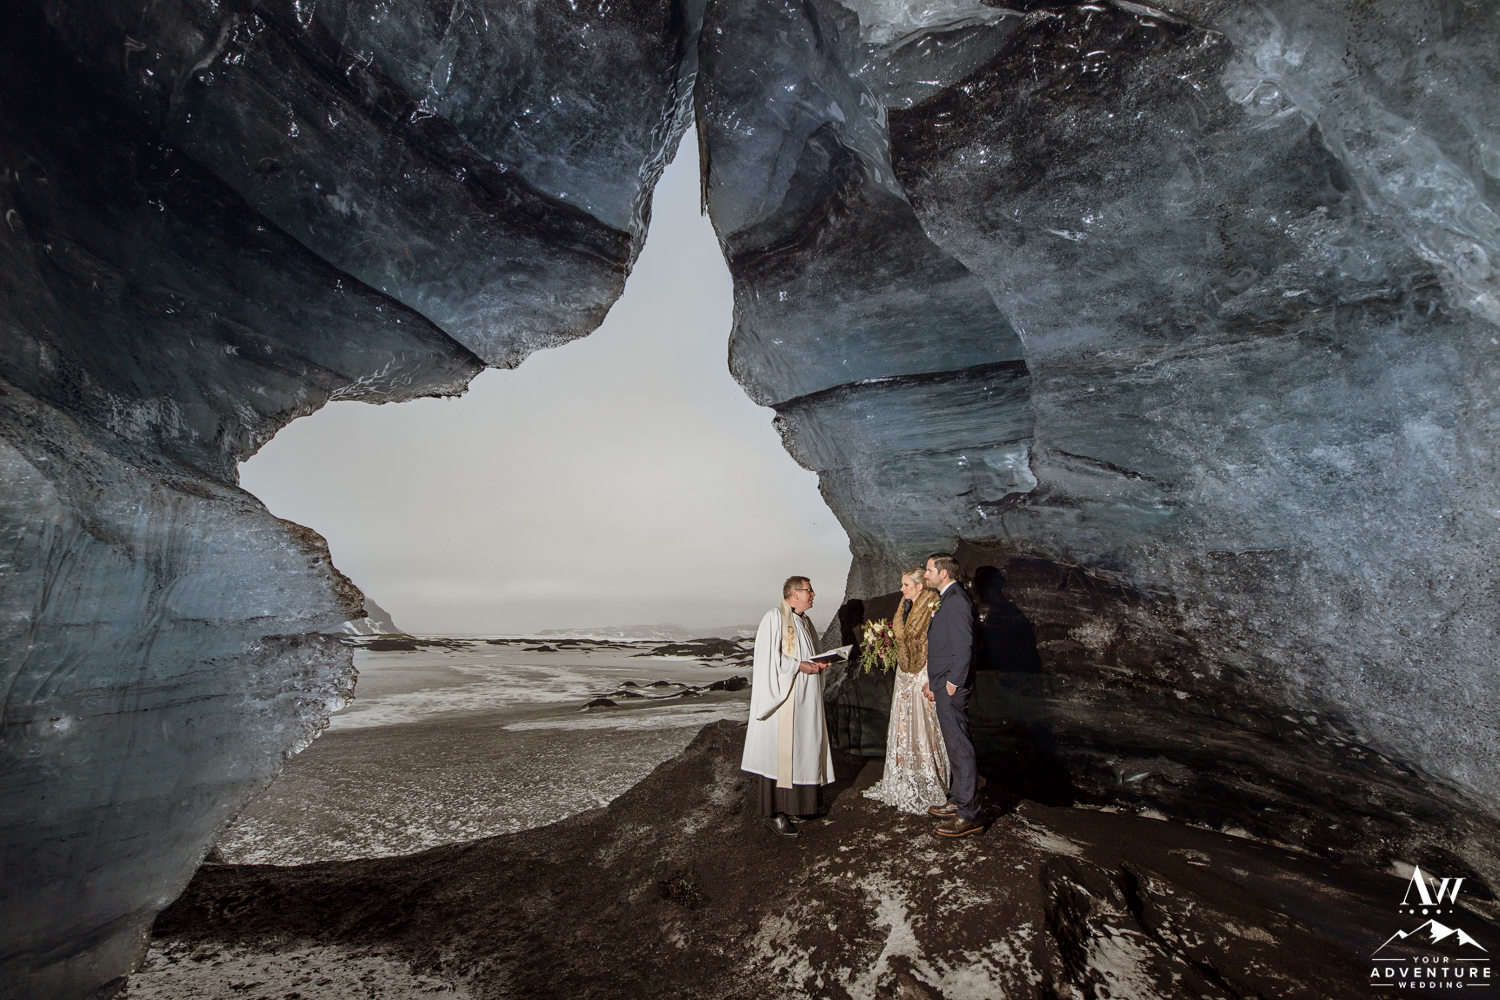 Wedding Ceremony inside of an Ice Cave in Iceland